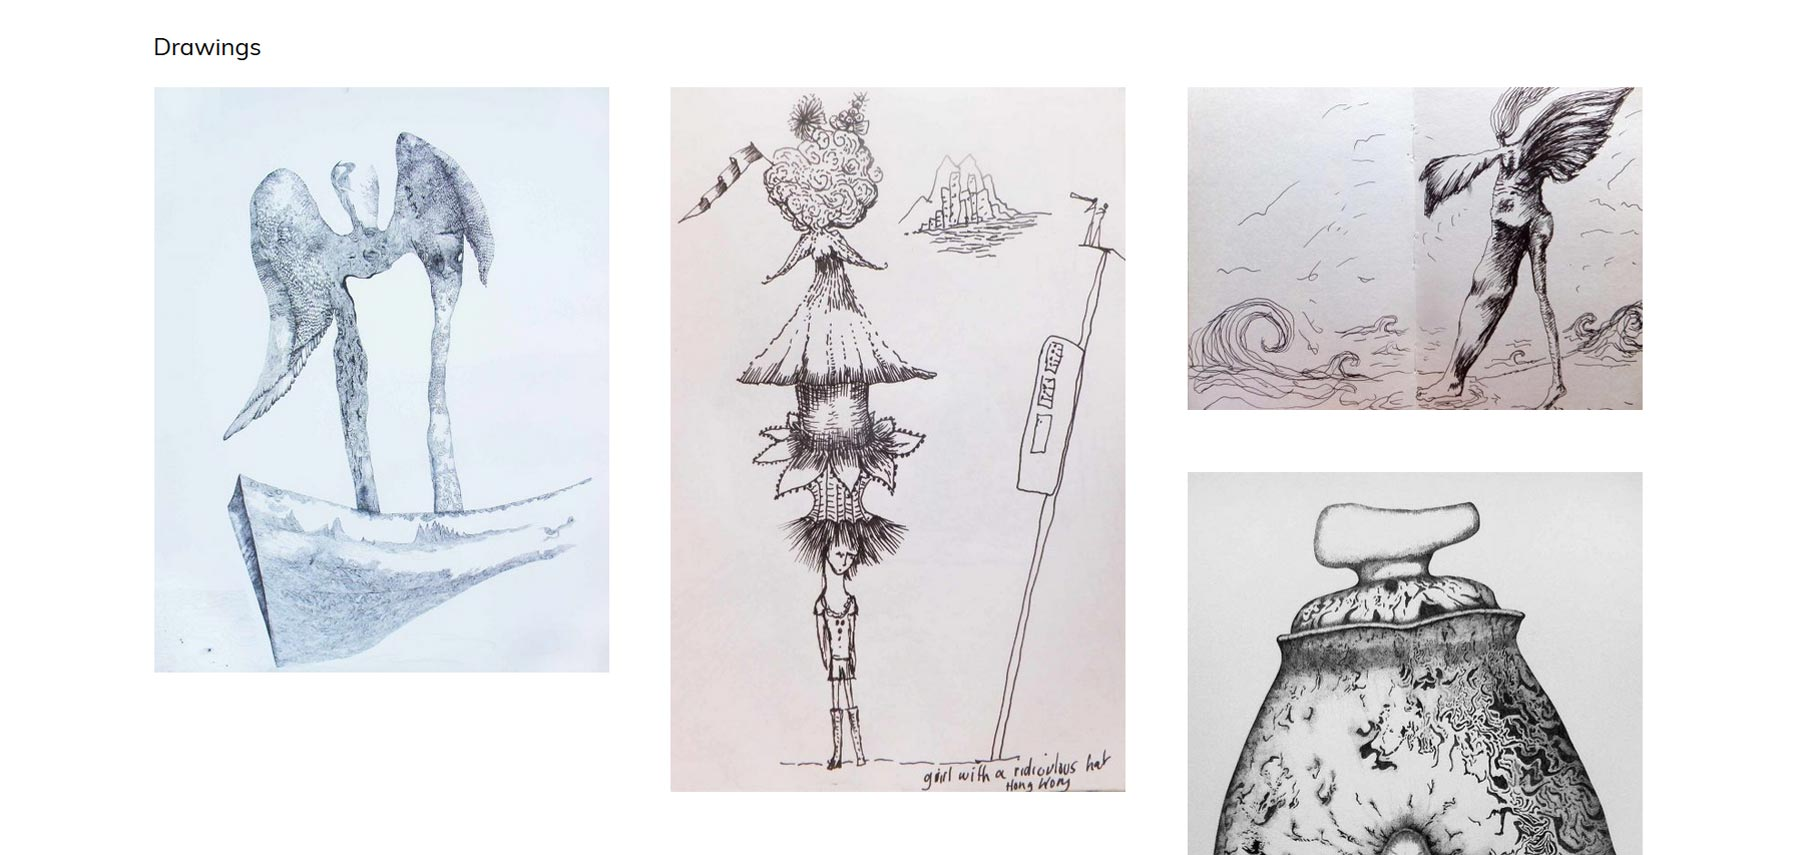 Jan Palethorpe artist drawings